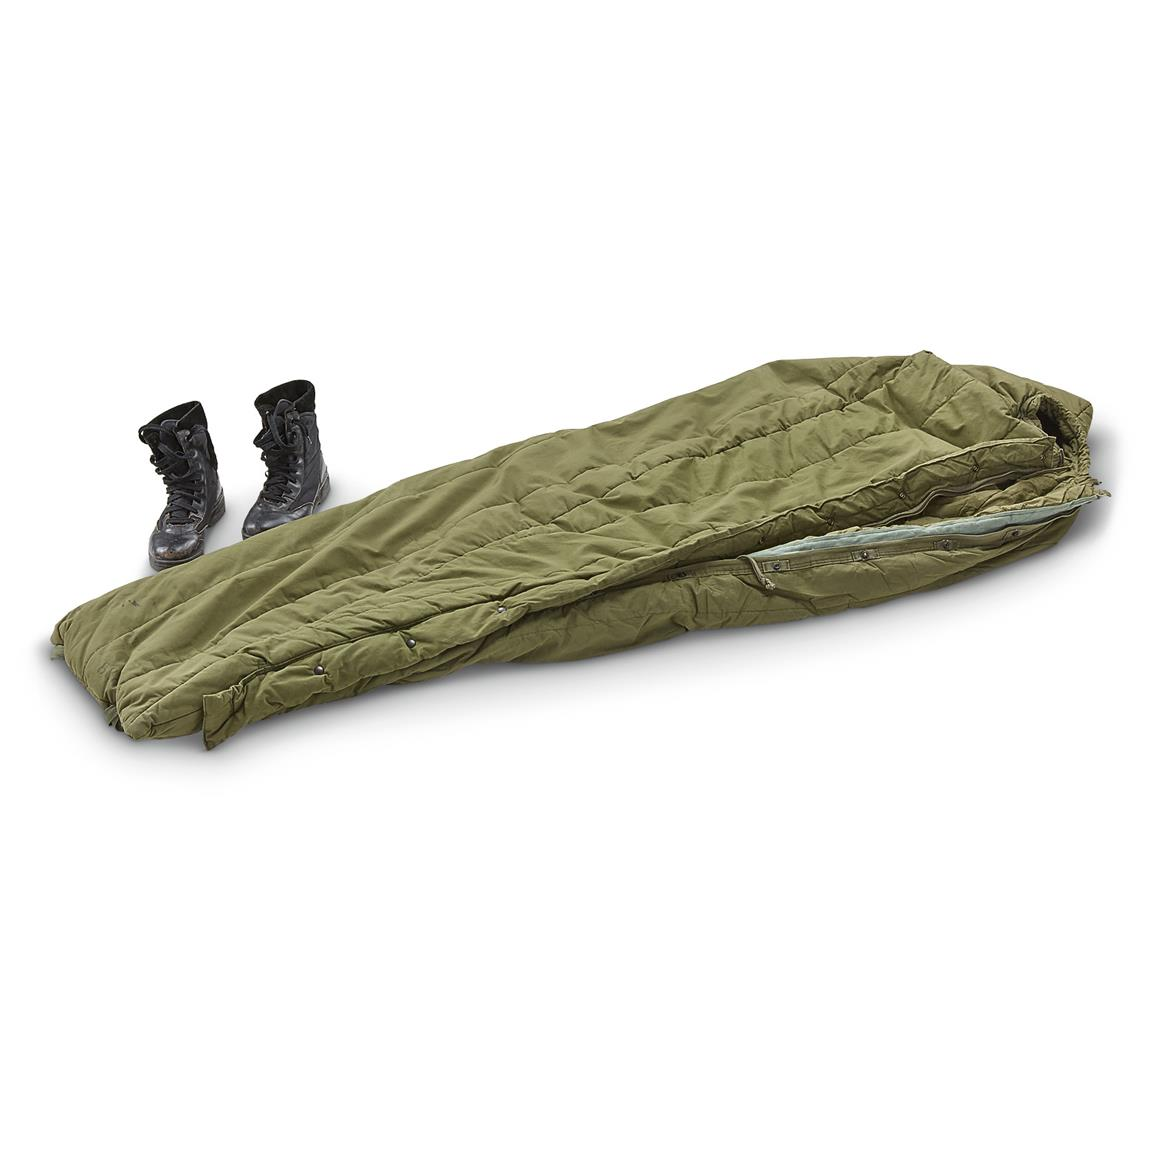 Used U.S. Military Surplus Intermediate Sleeping Bag